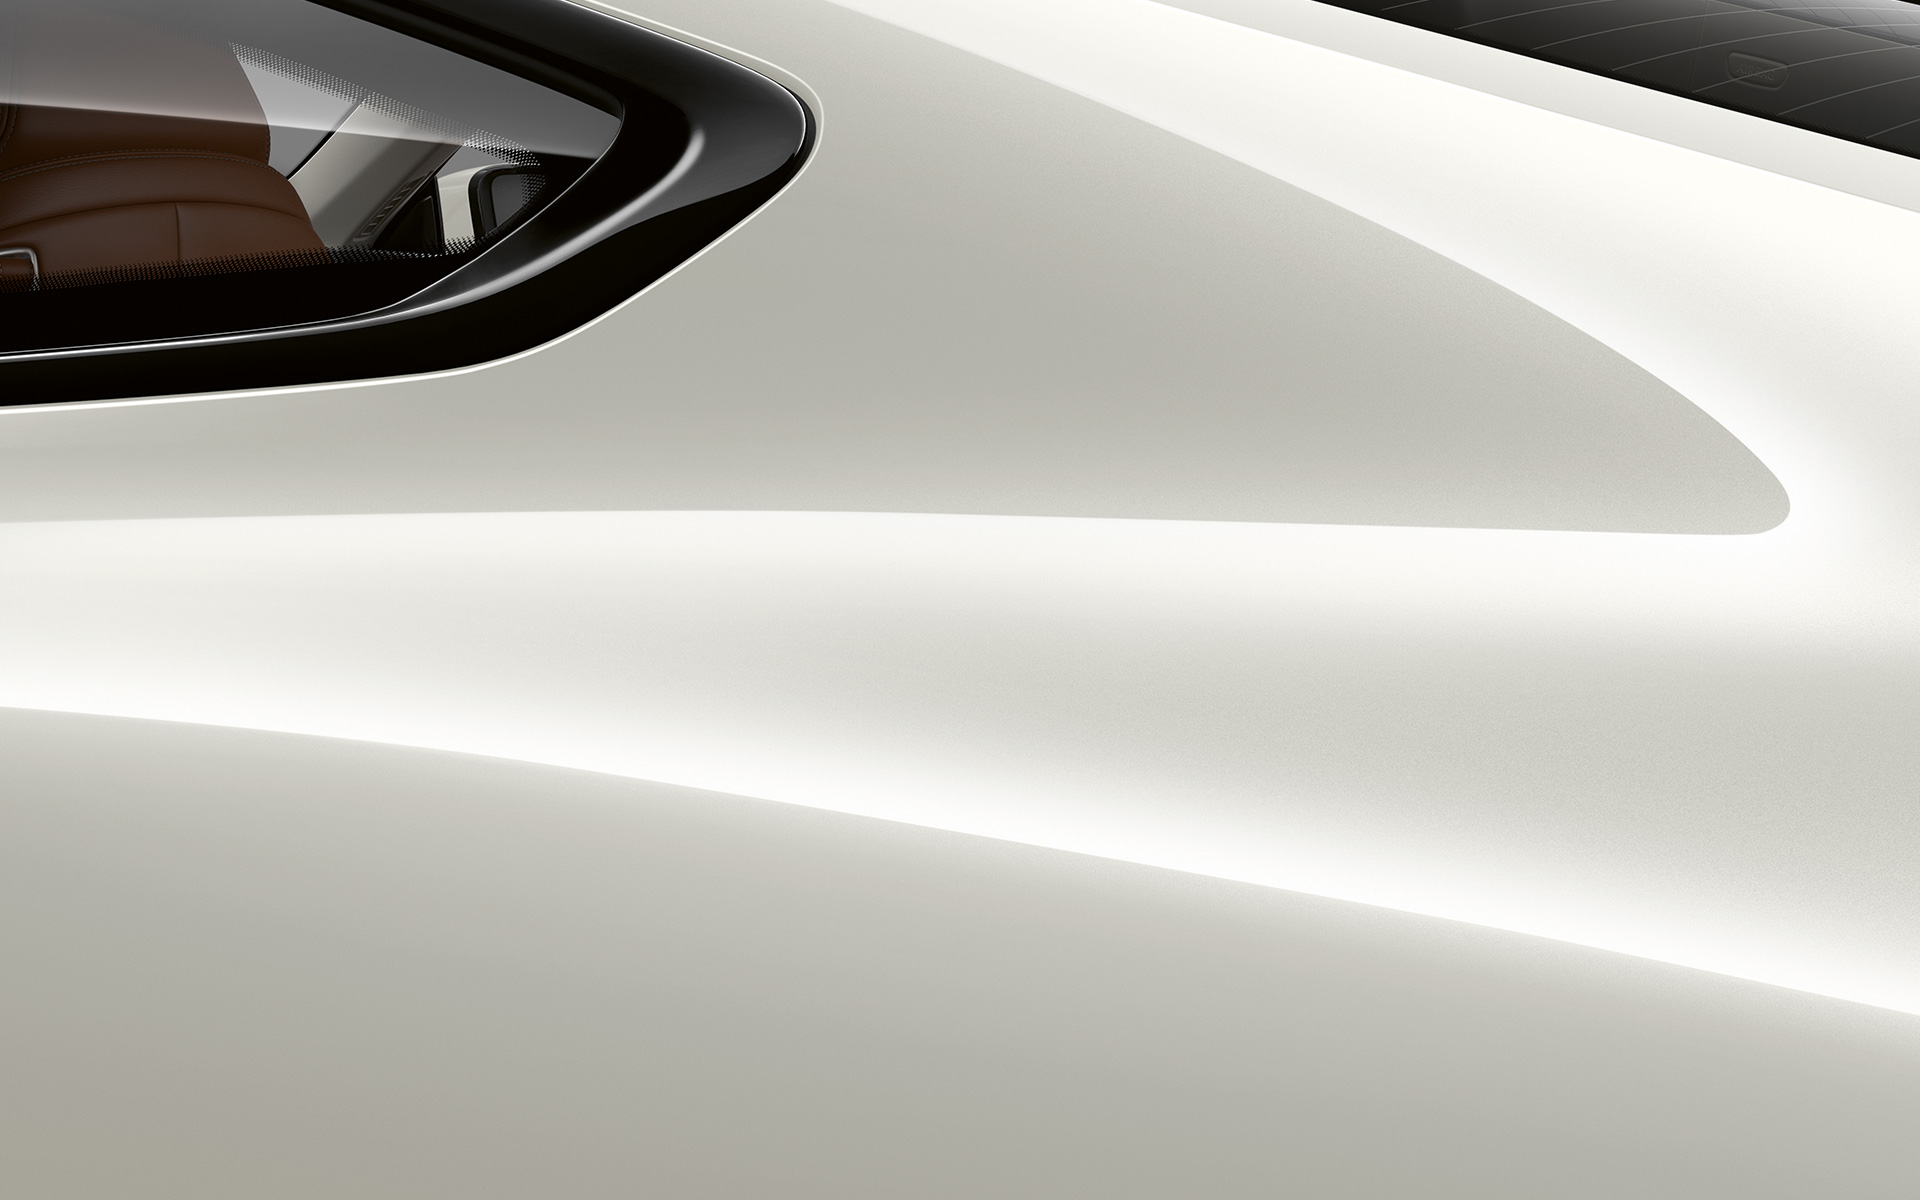 Close-up of the C pillar of the BMW 8 Series Coupé in Mineral White metallic.